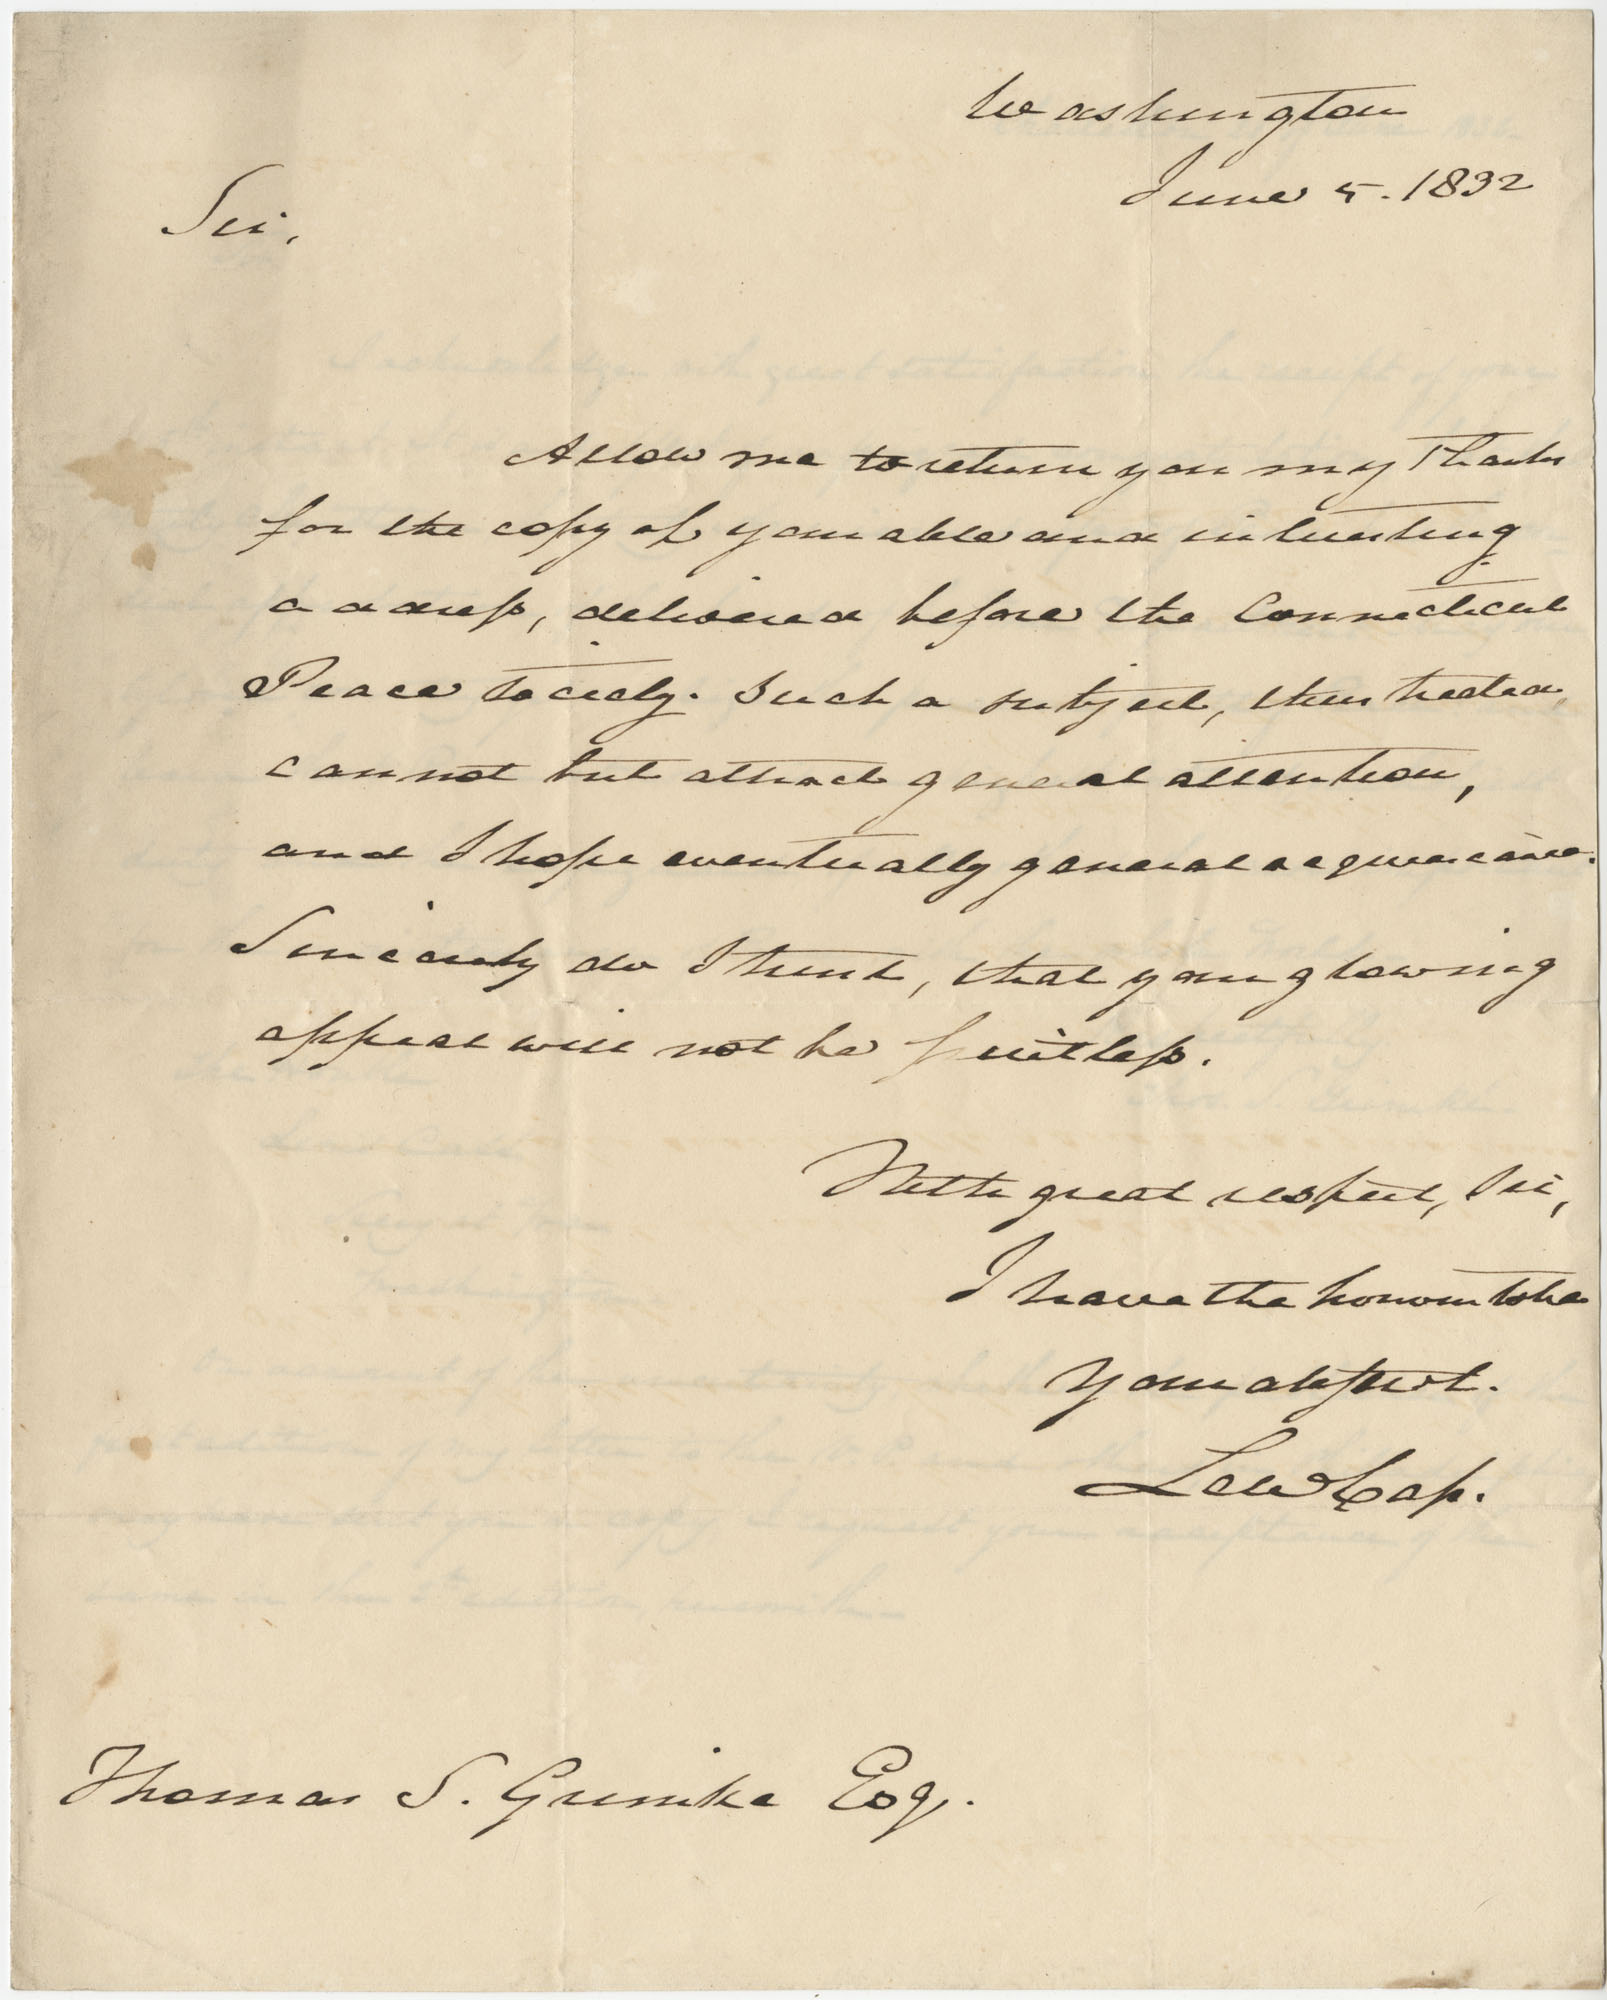 Letter from Lewis Cass to Thomas S. Grimke, June 5, 1832